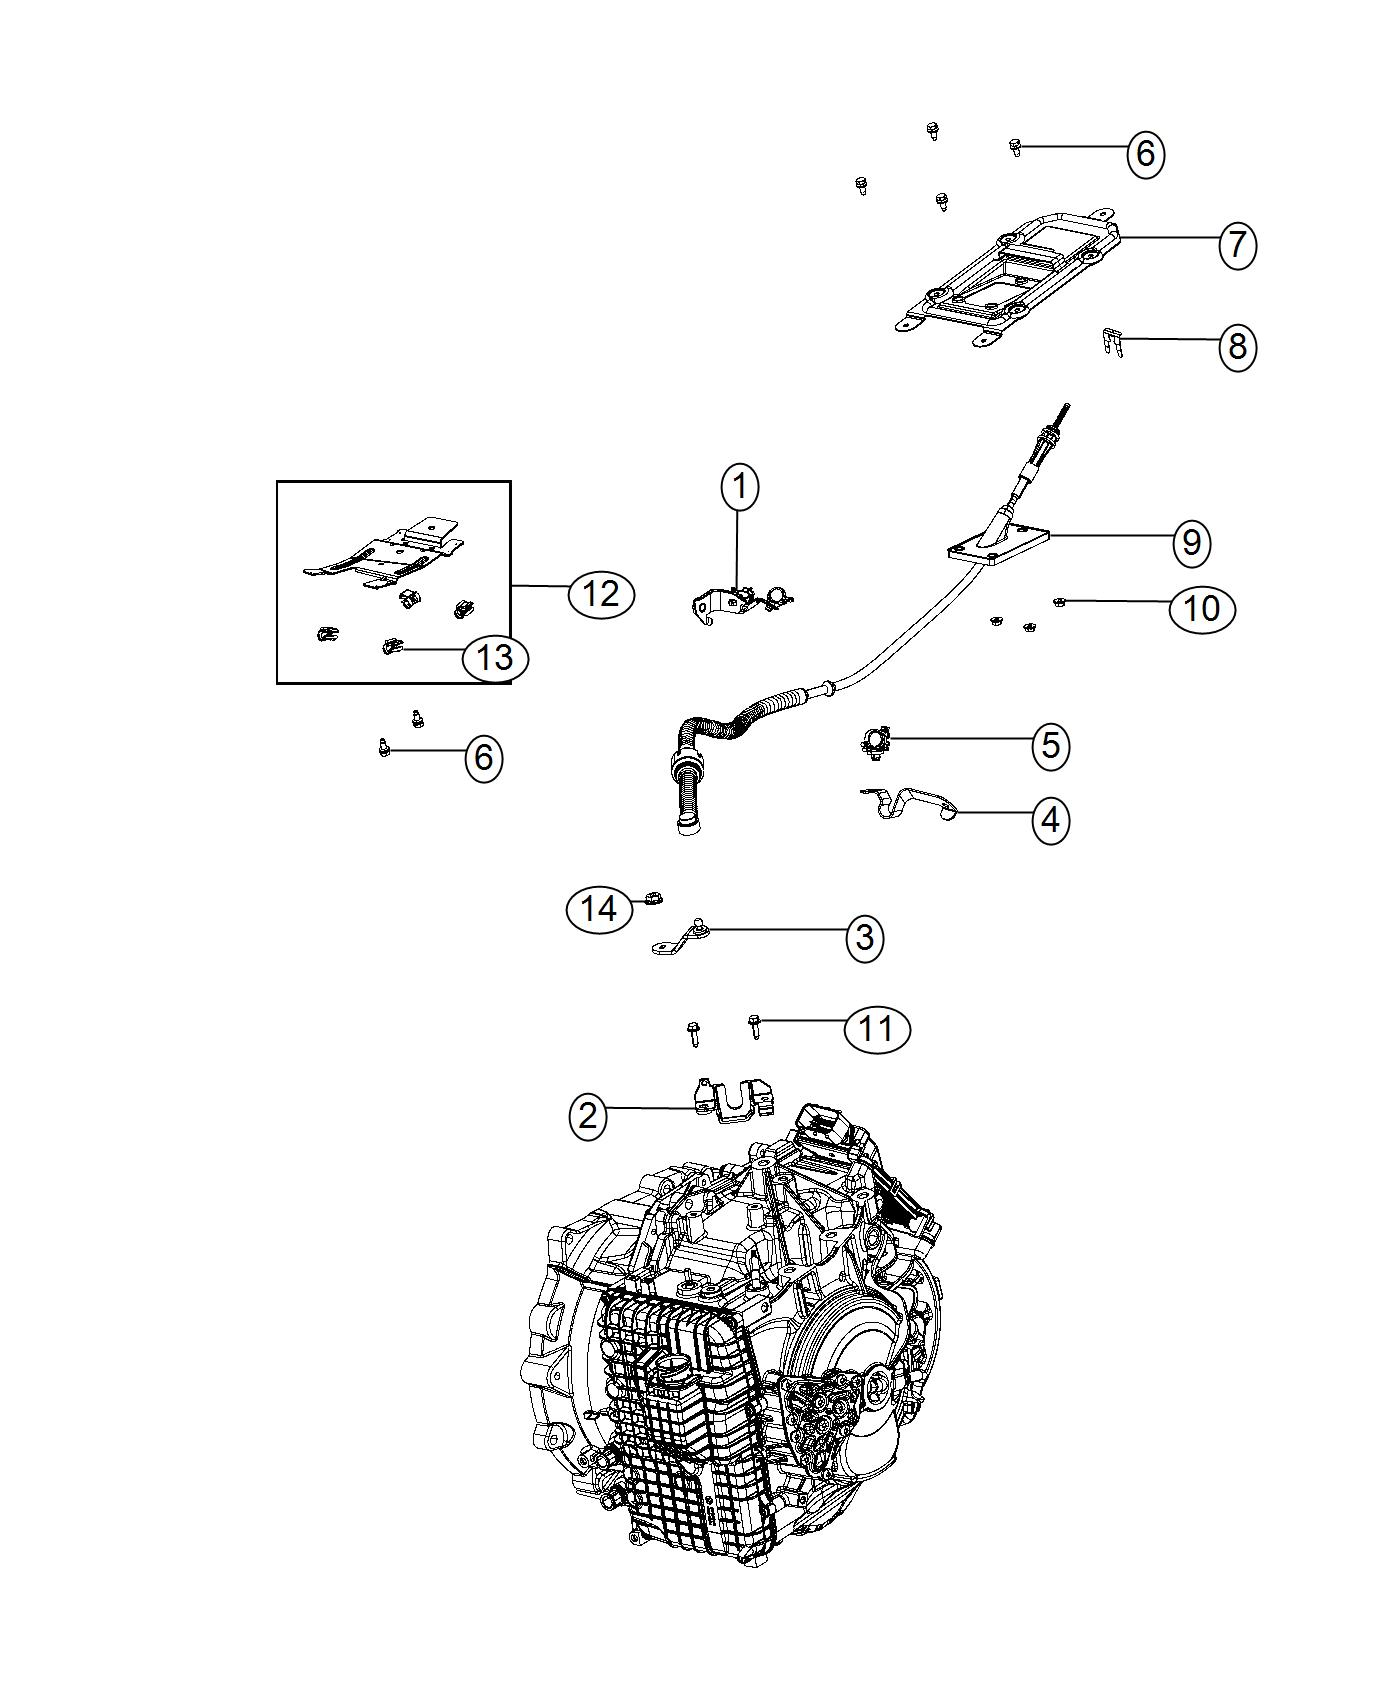 2017 Jeep Renegade Bracket. Shift cable. Export